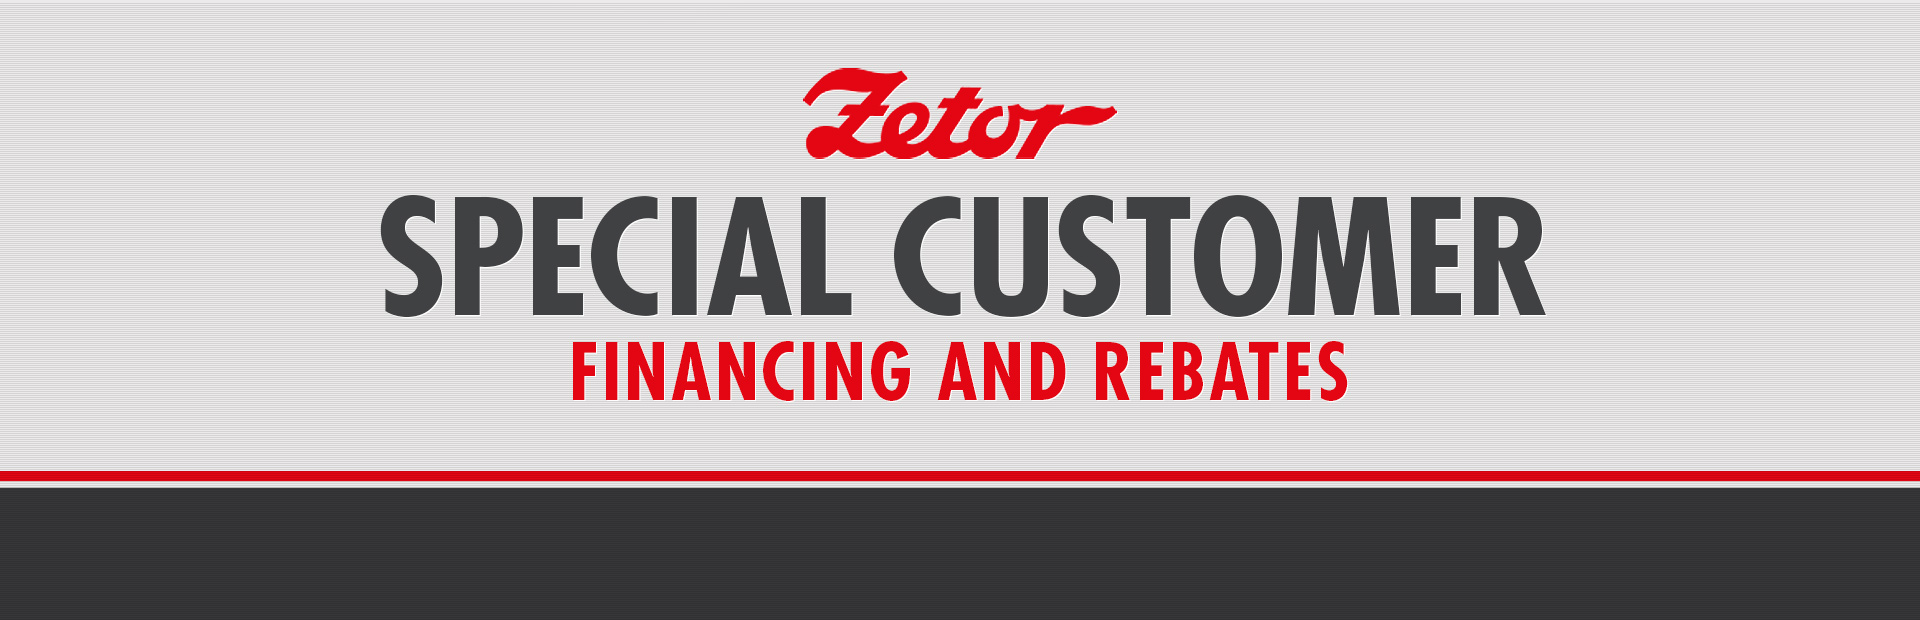 Zetor: Special Customer Financing and Rebates